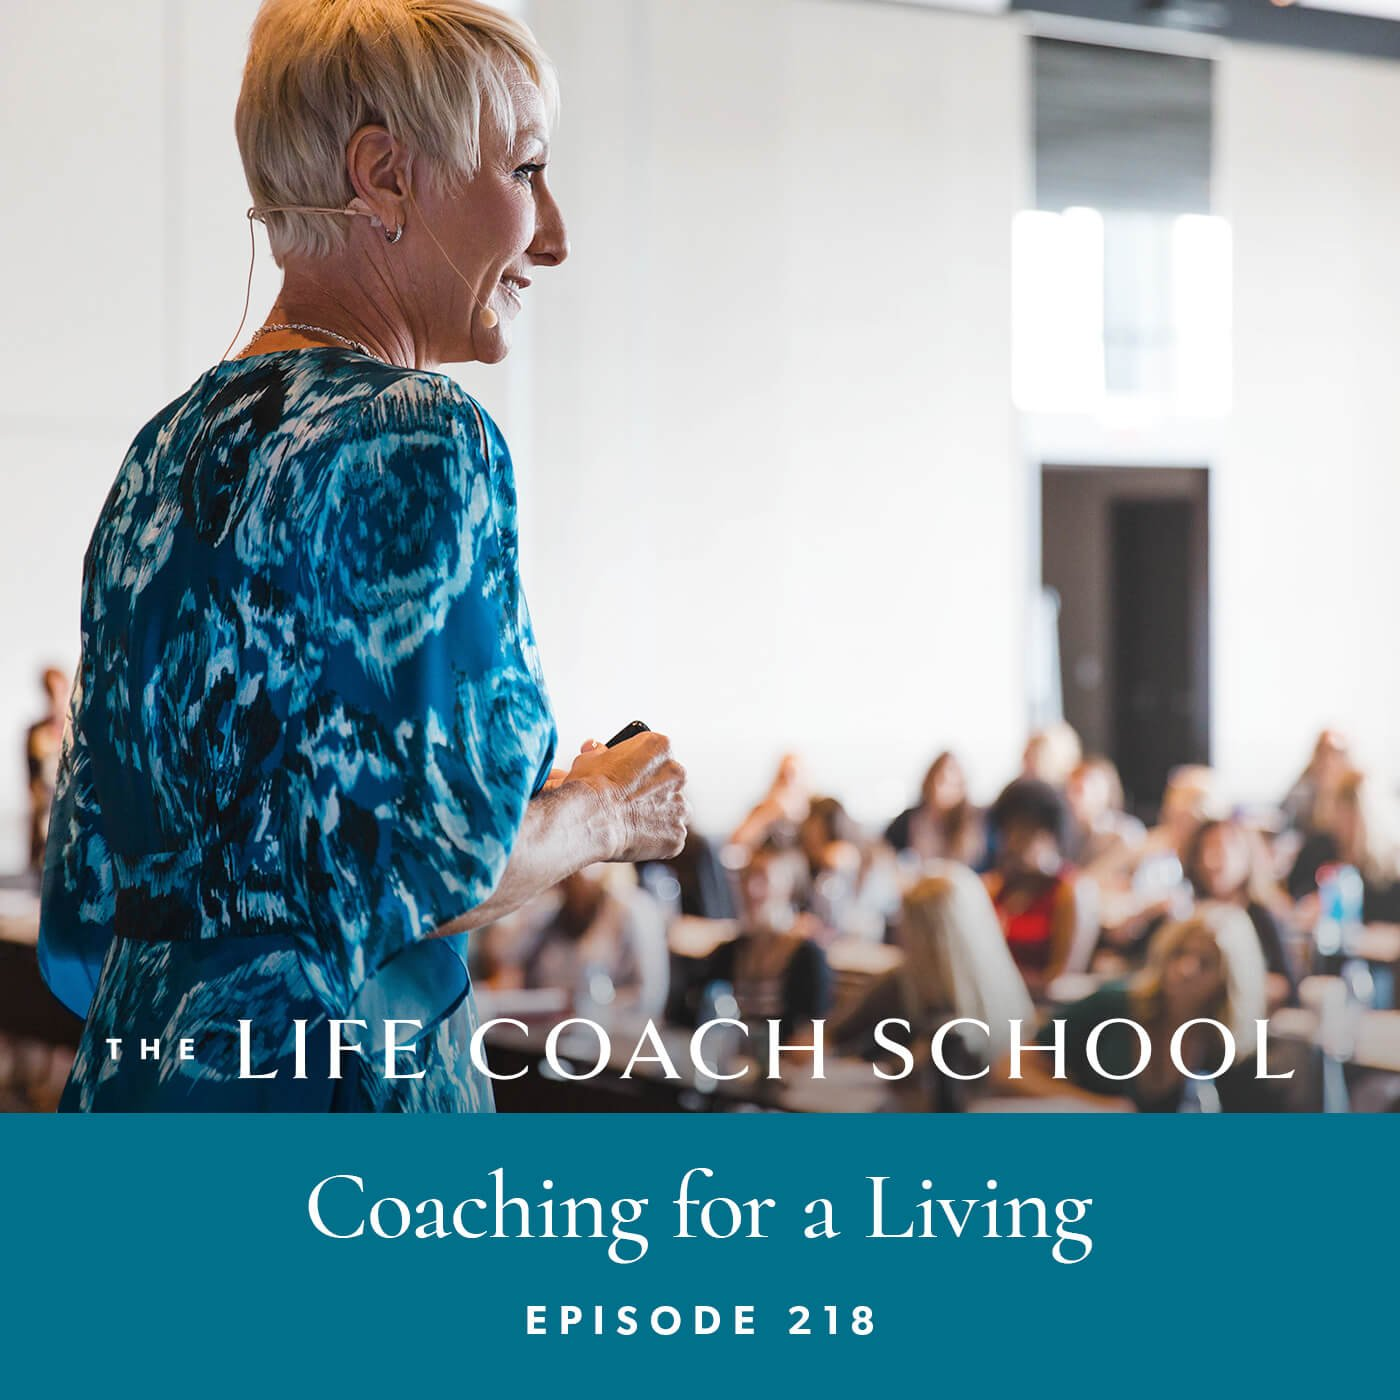 The Life Coach School Podcast with Brooke Castillo | Episode 218 | Coaching for a Living